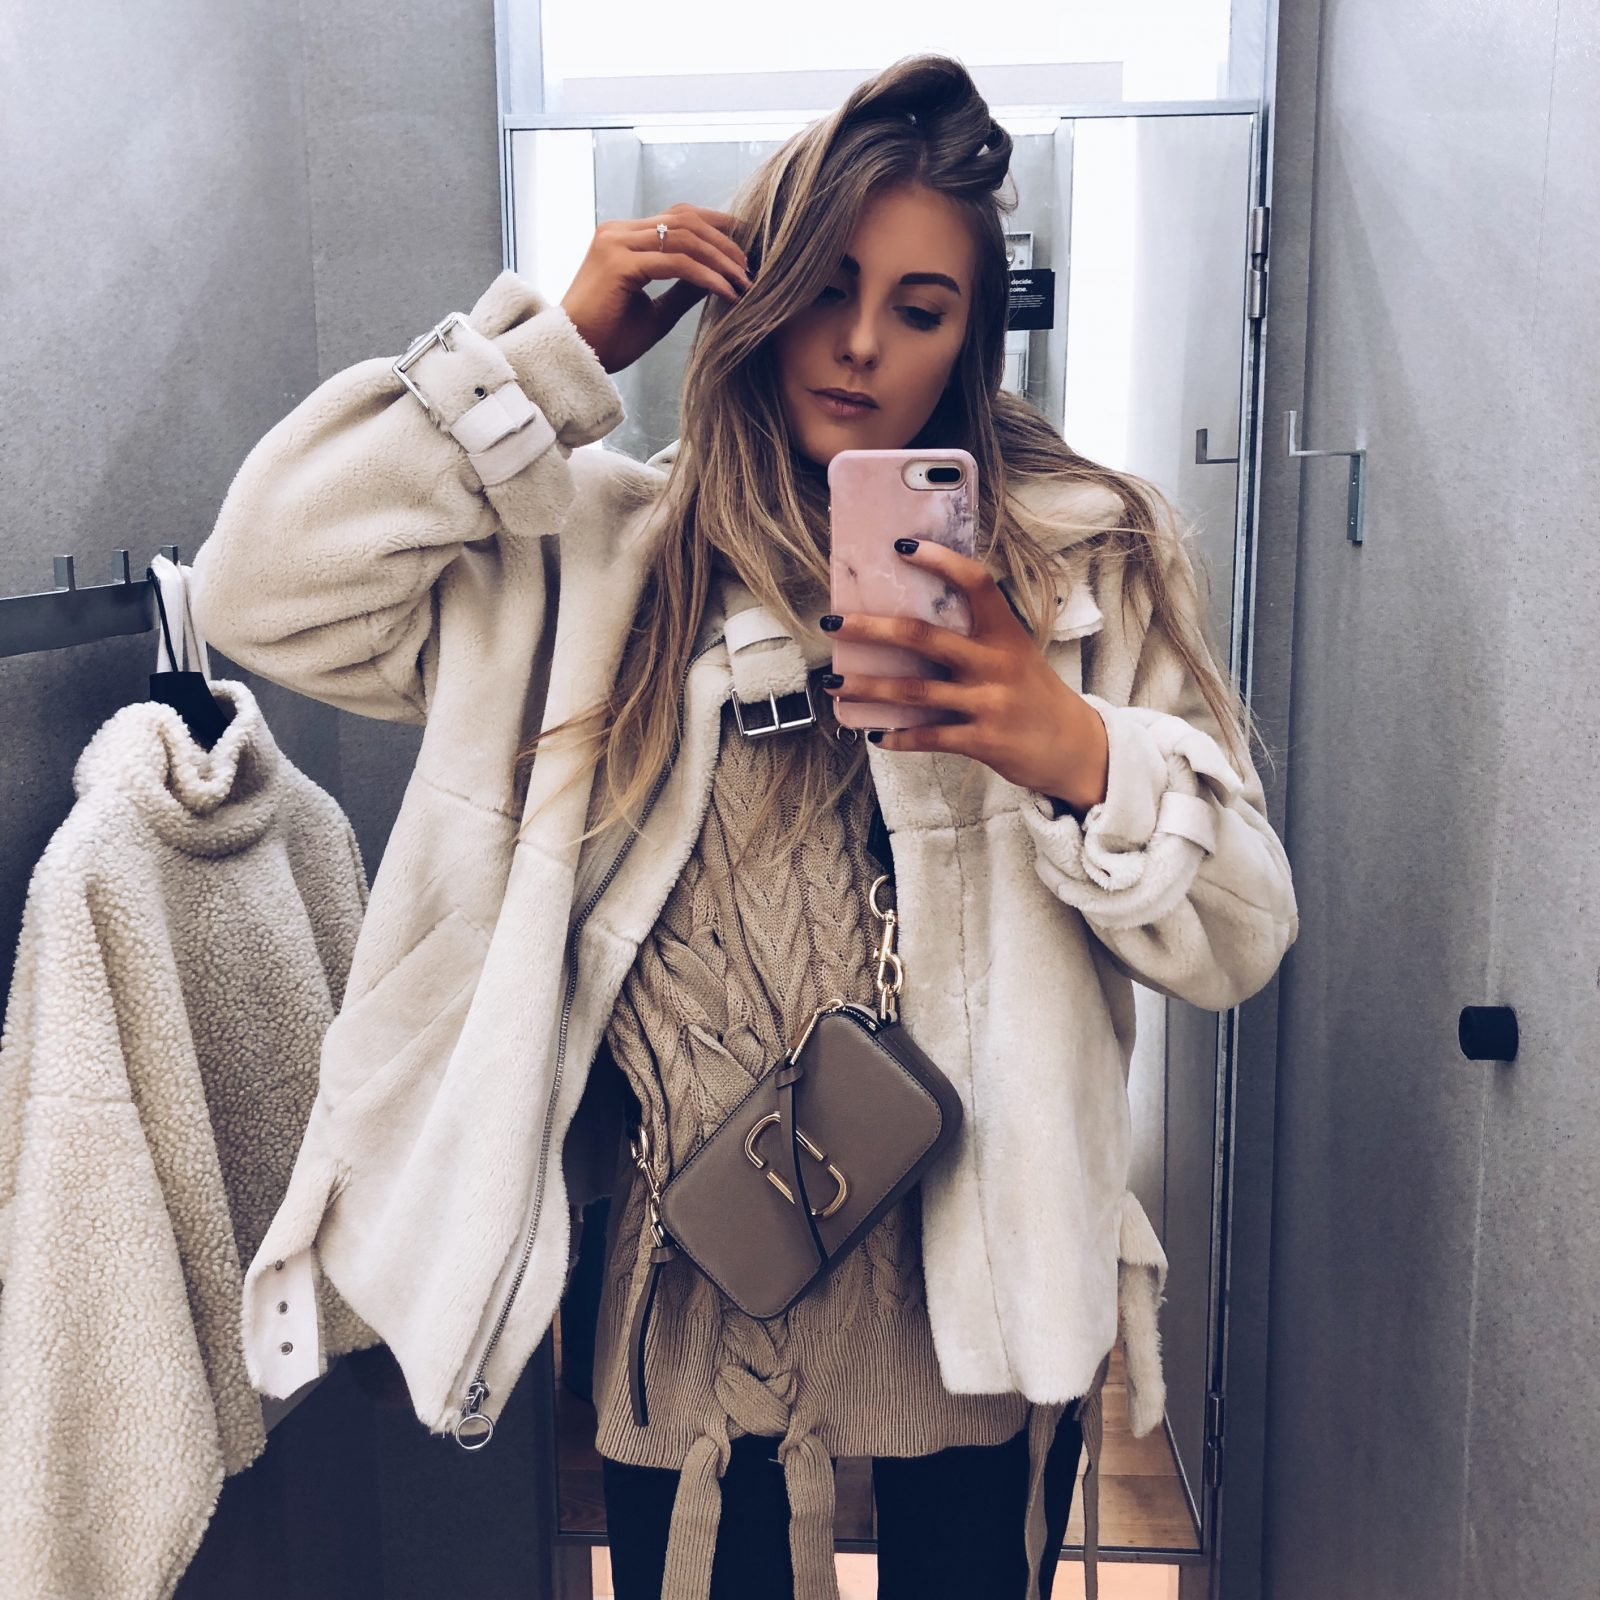 Missguided Jumper - Topshop Fur Coat